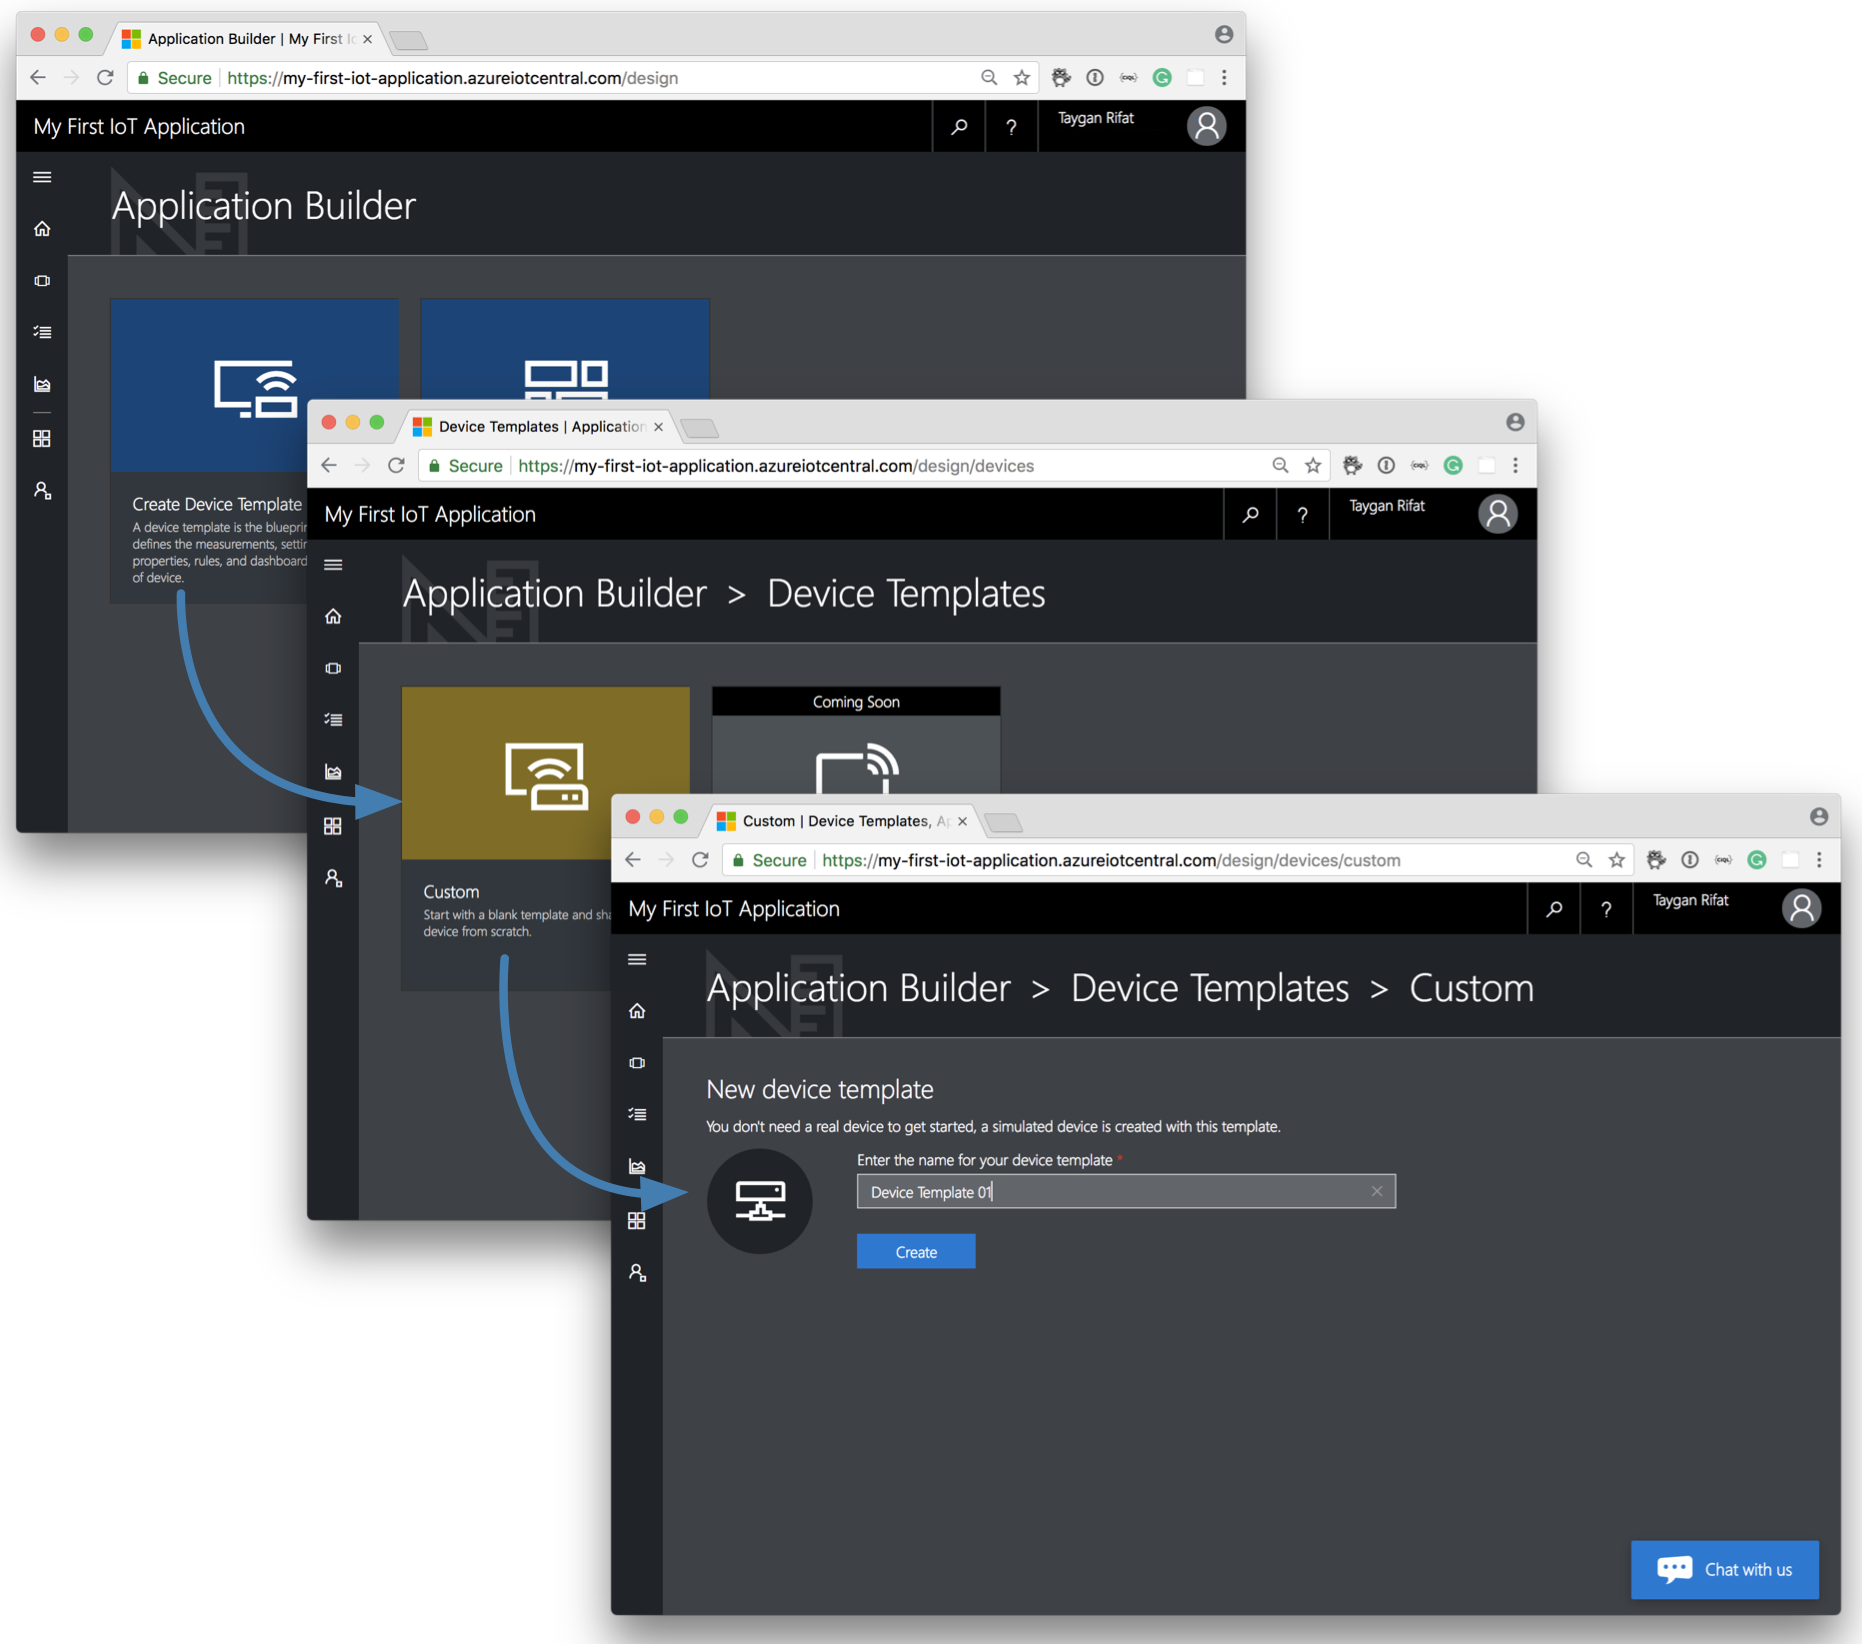 azure_iot_central_application_builder.png